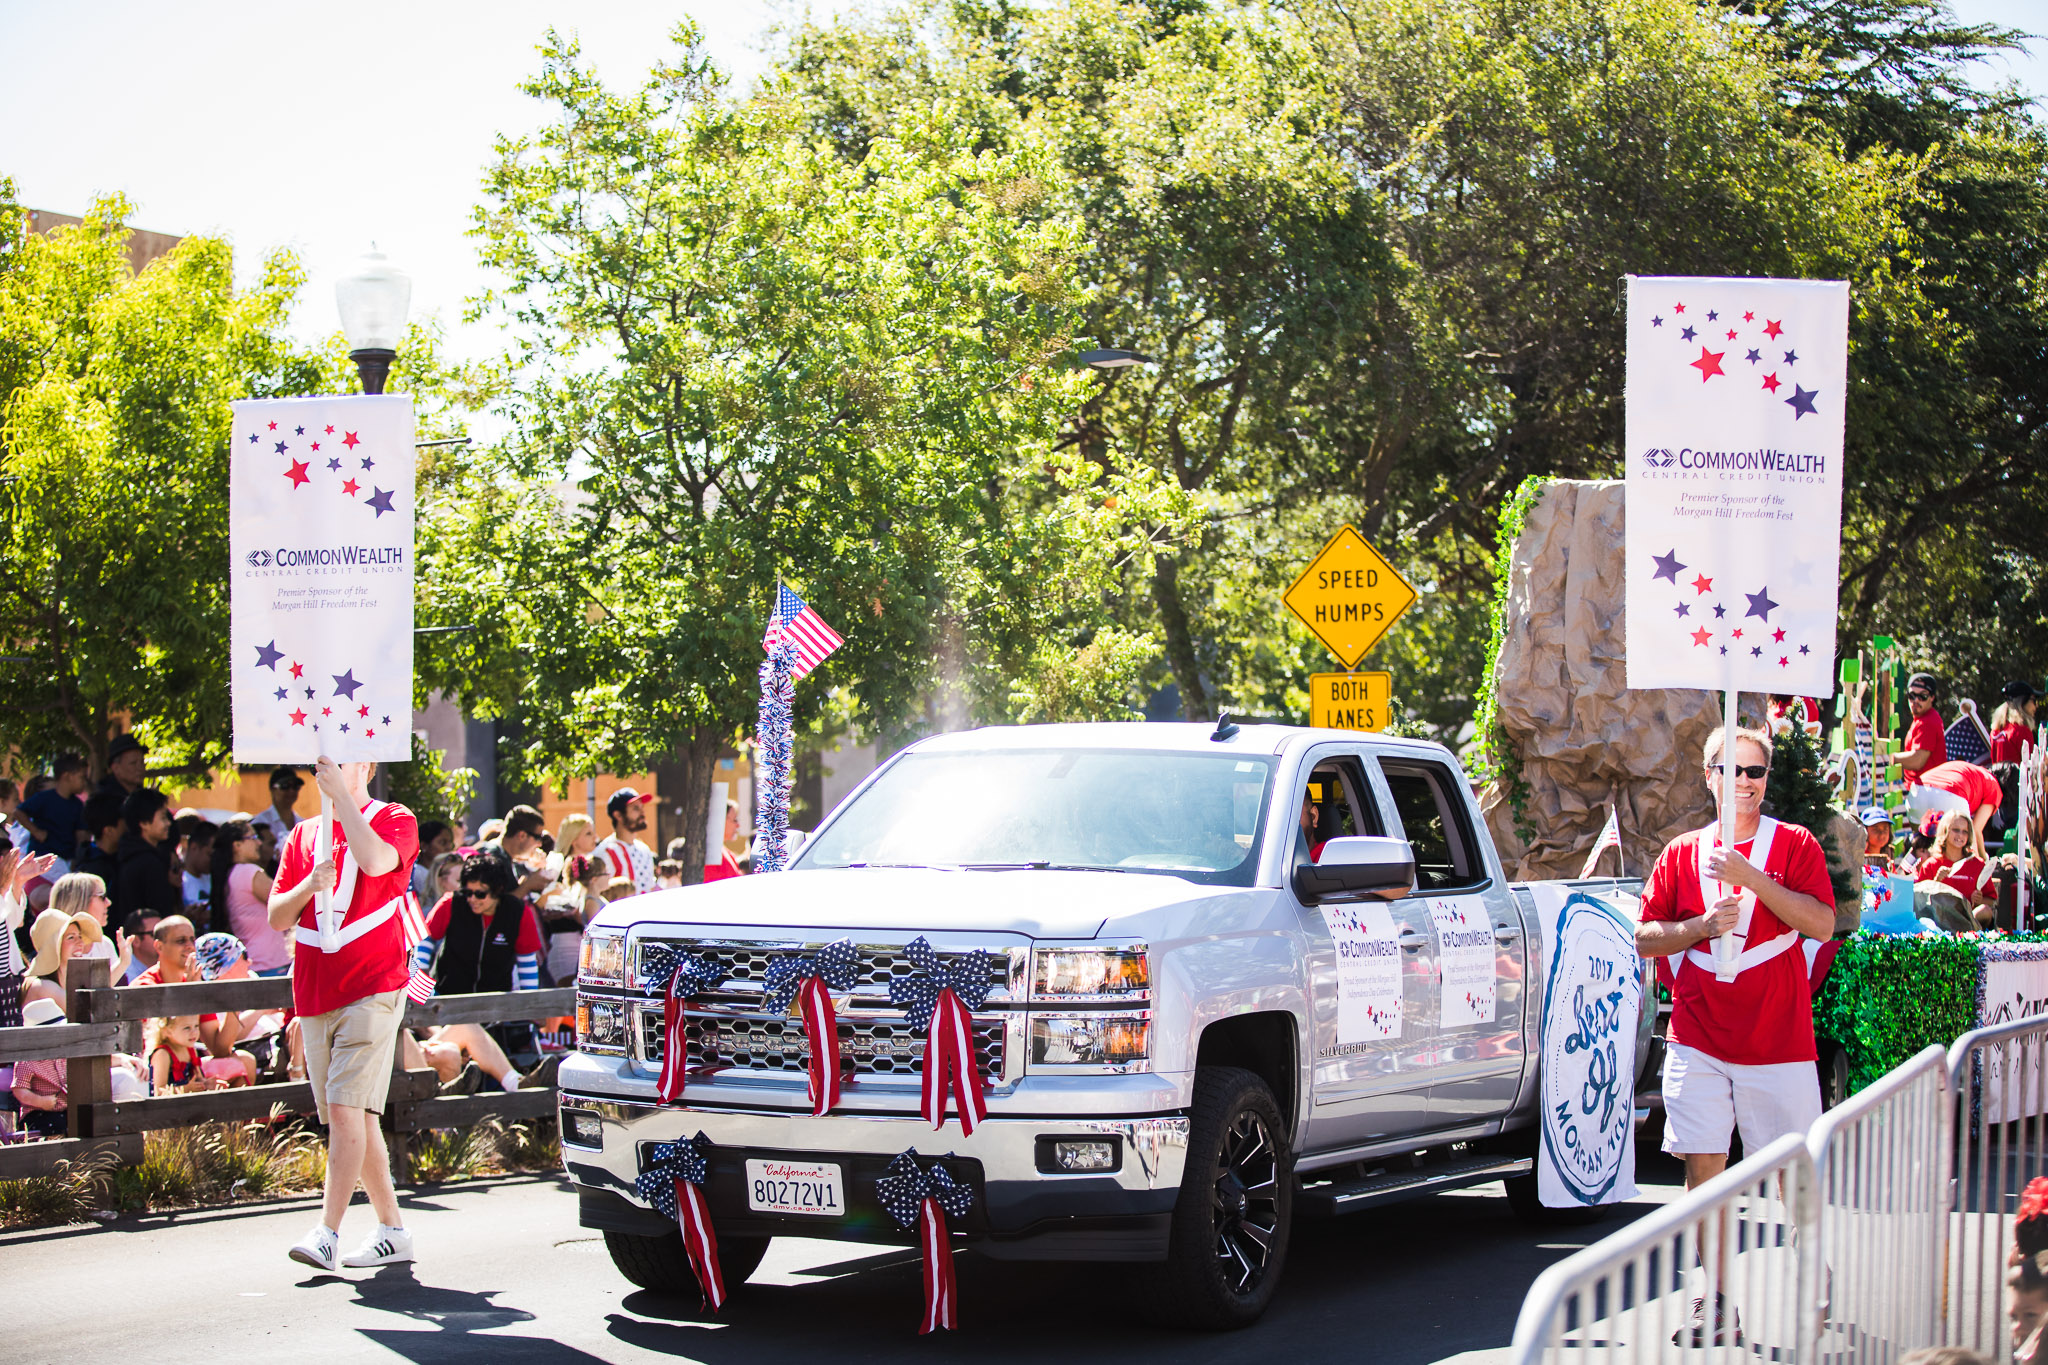 Archer_Inspired_Photography_Morgan_Hill_California_4th_of_july_parade-59.jpg